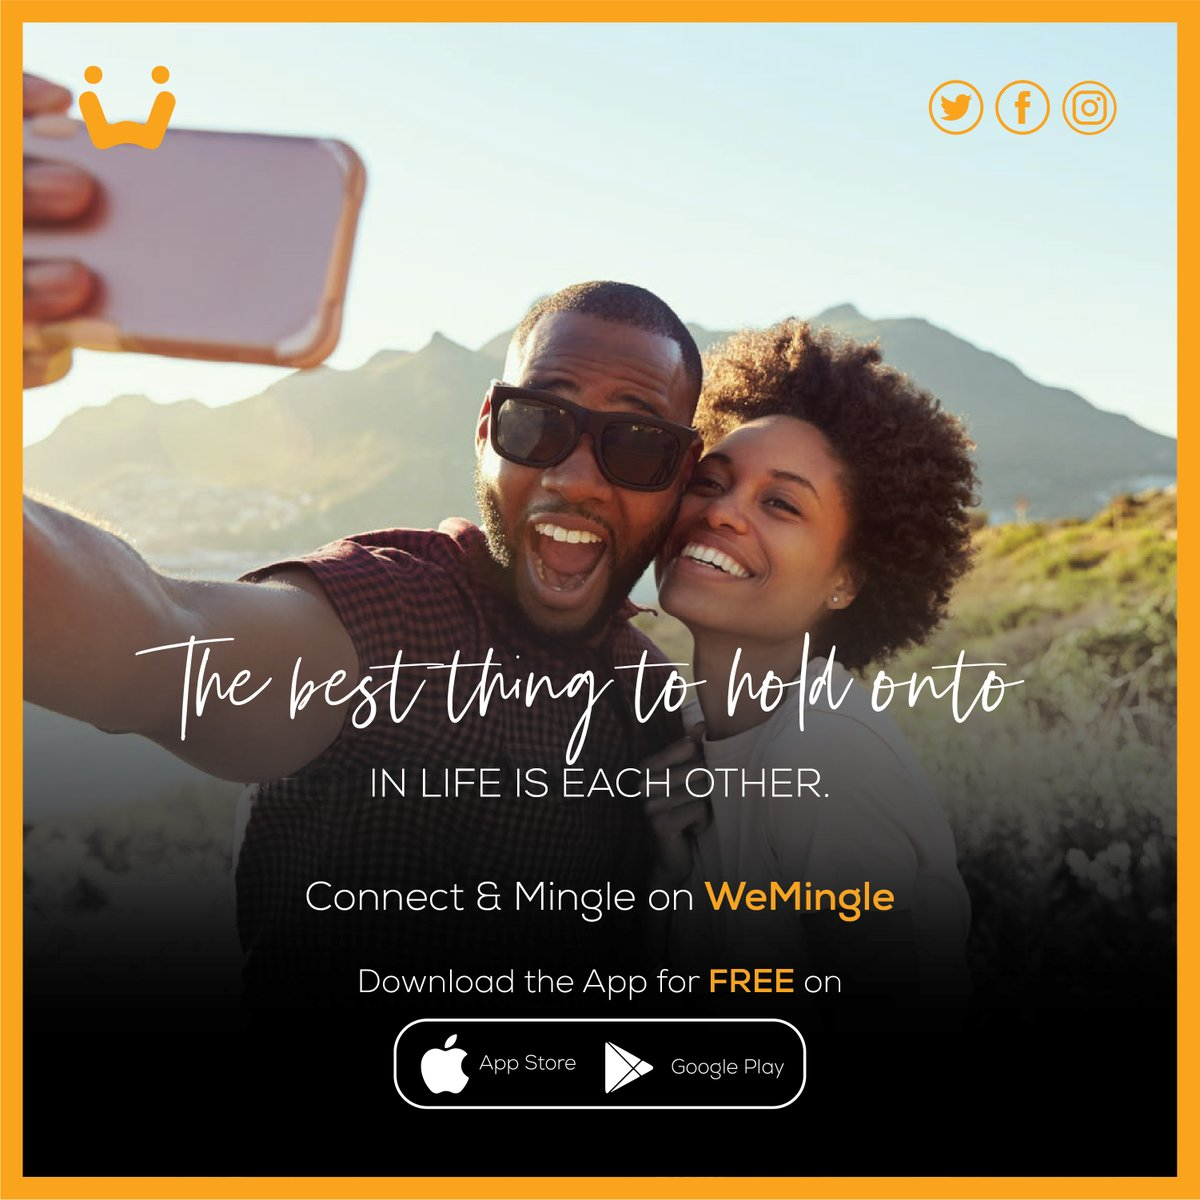 The best thing to hold onto in life is each other.  Meet exciting singles in and around Africa on Africa's #1 dating app   Sign up for FREE and mingle with singles all over the continent.  #dating #love #FindLove #ghanalove #lovemadeinafrica #friendship